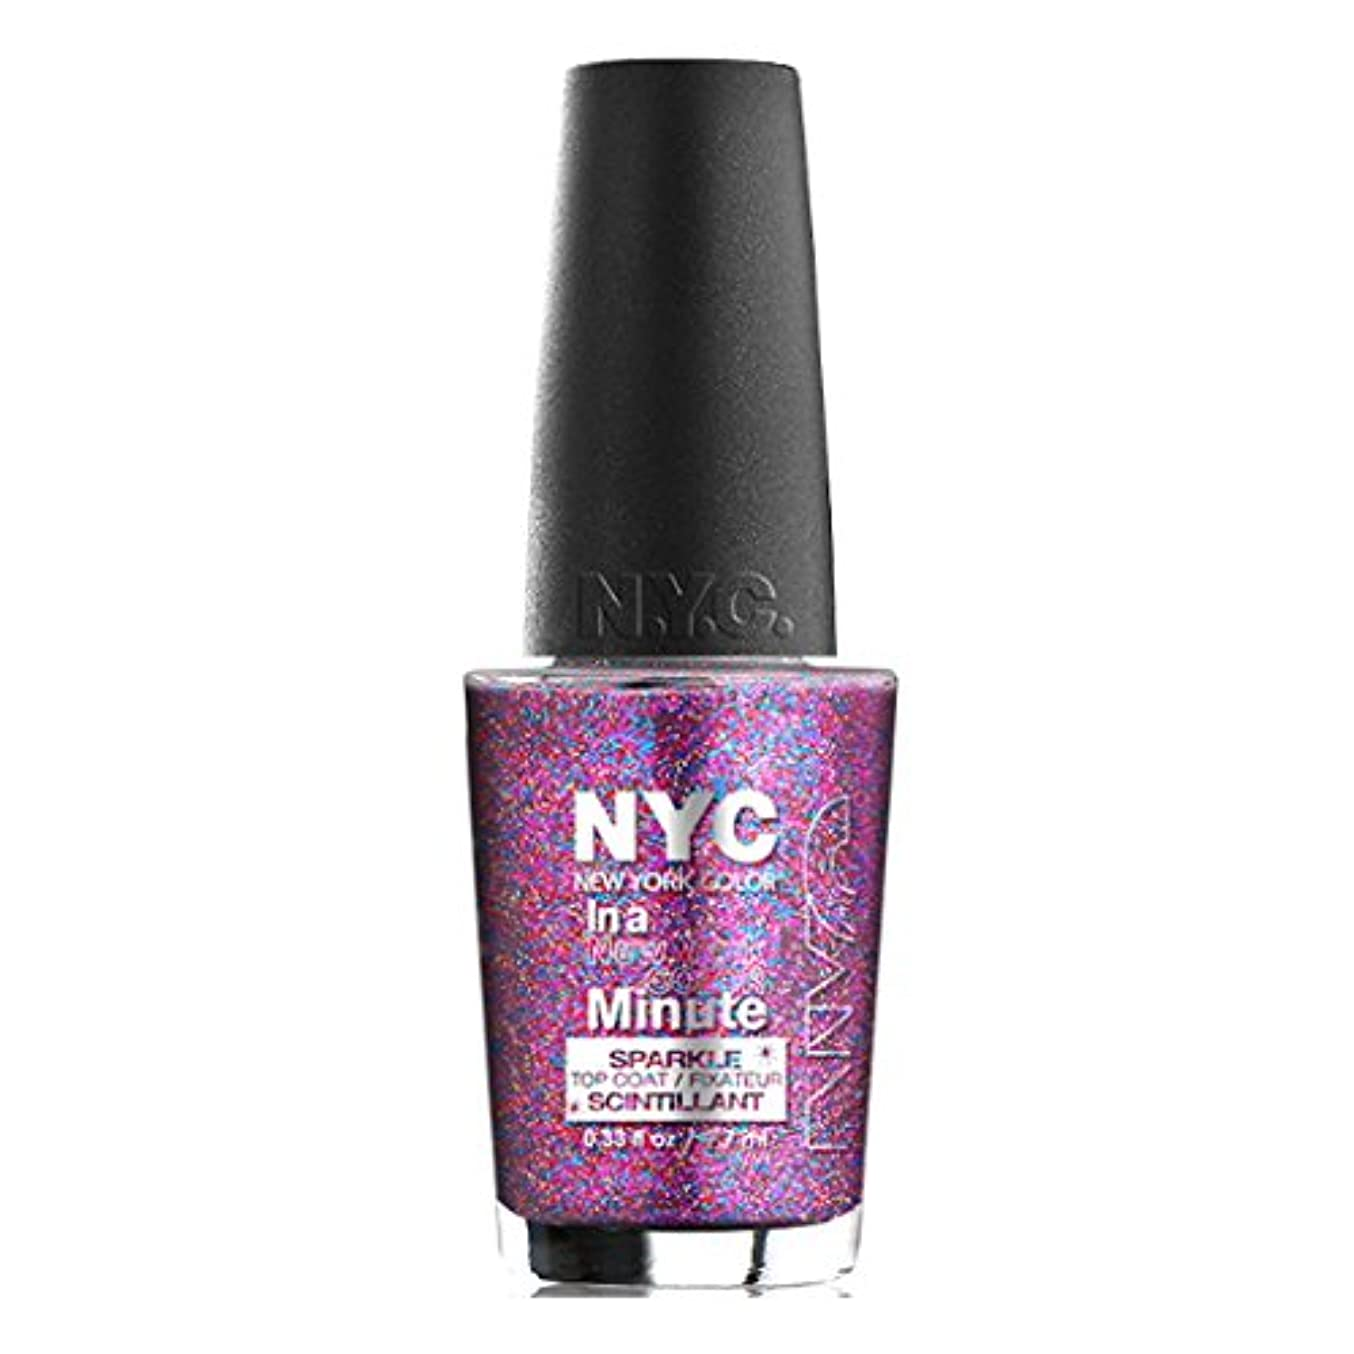 湿原高さベンチ(3 Pack) NYC In A New York Color Minute Sparkle Top Coat - Big City Dazzle (並行輸入品)